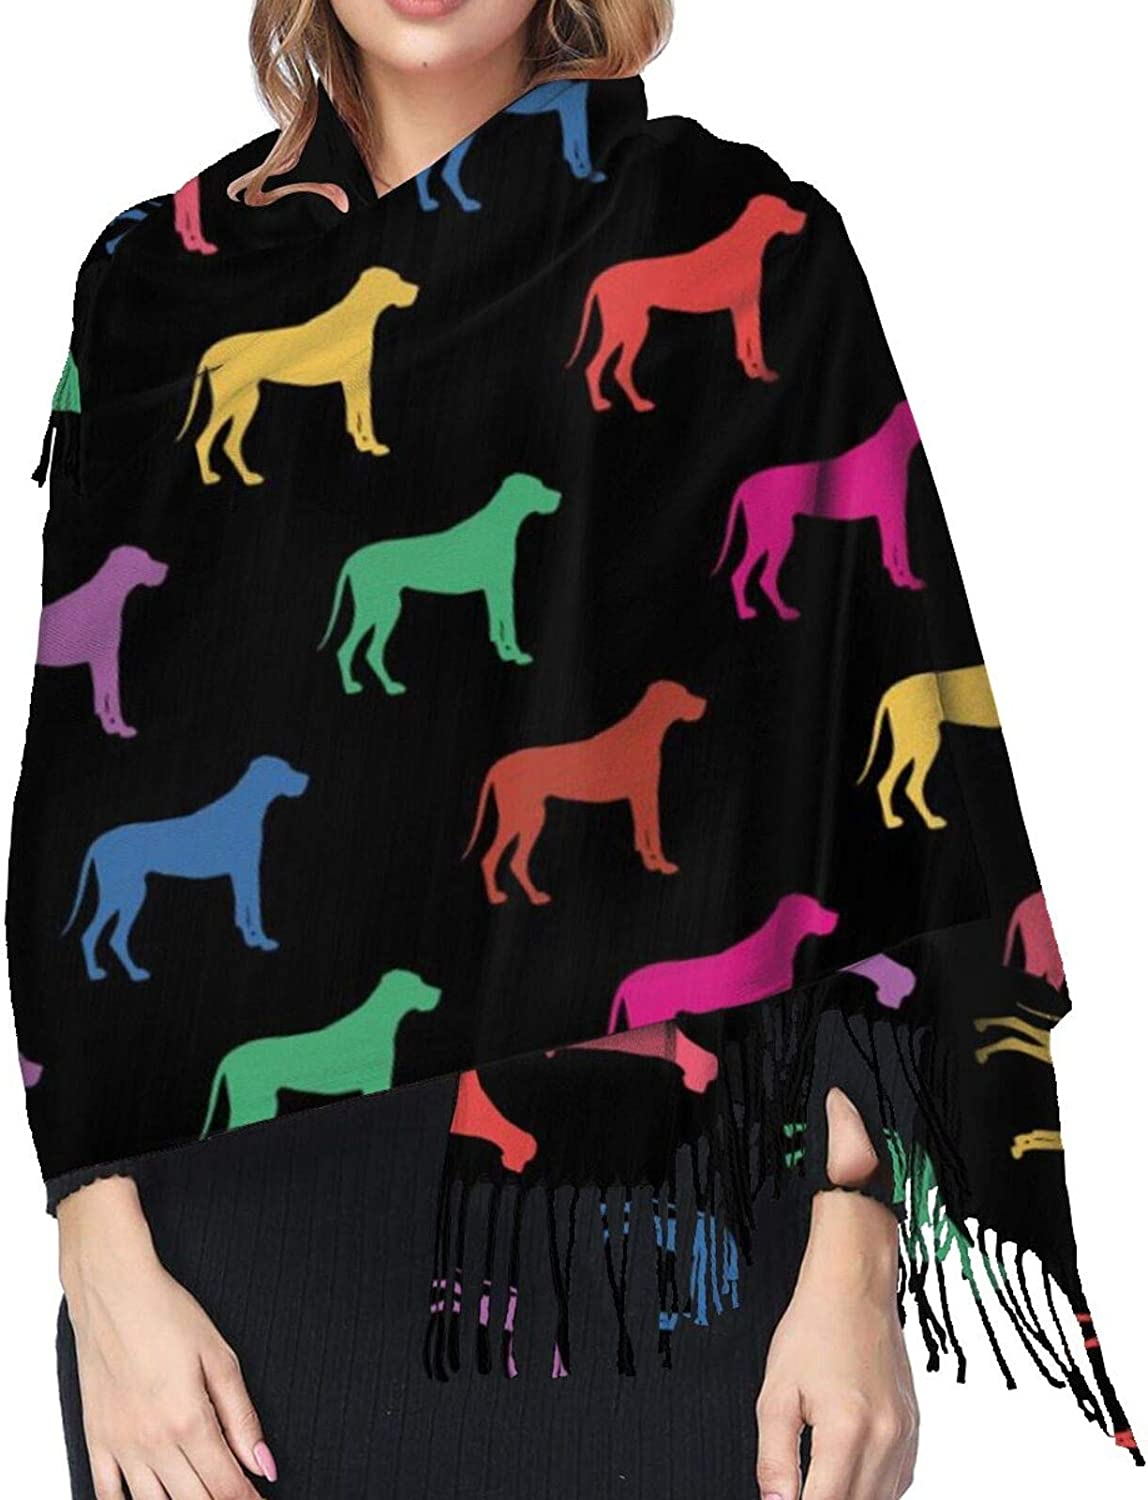 Great Dane Dogs Colors Cashmere Scarf Fashion Long Shawl with Fringed Edges Super Soft Warm Cozy Light Blanket Scarves Wrap Ultra Warm Winter Accessories Gifts For Men And Women